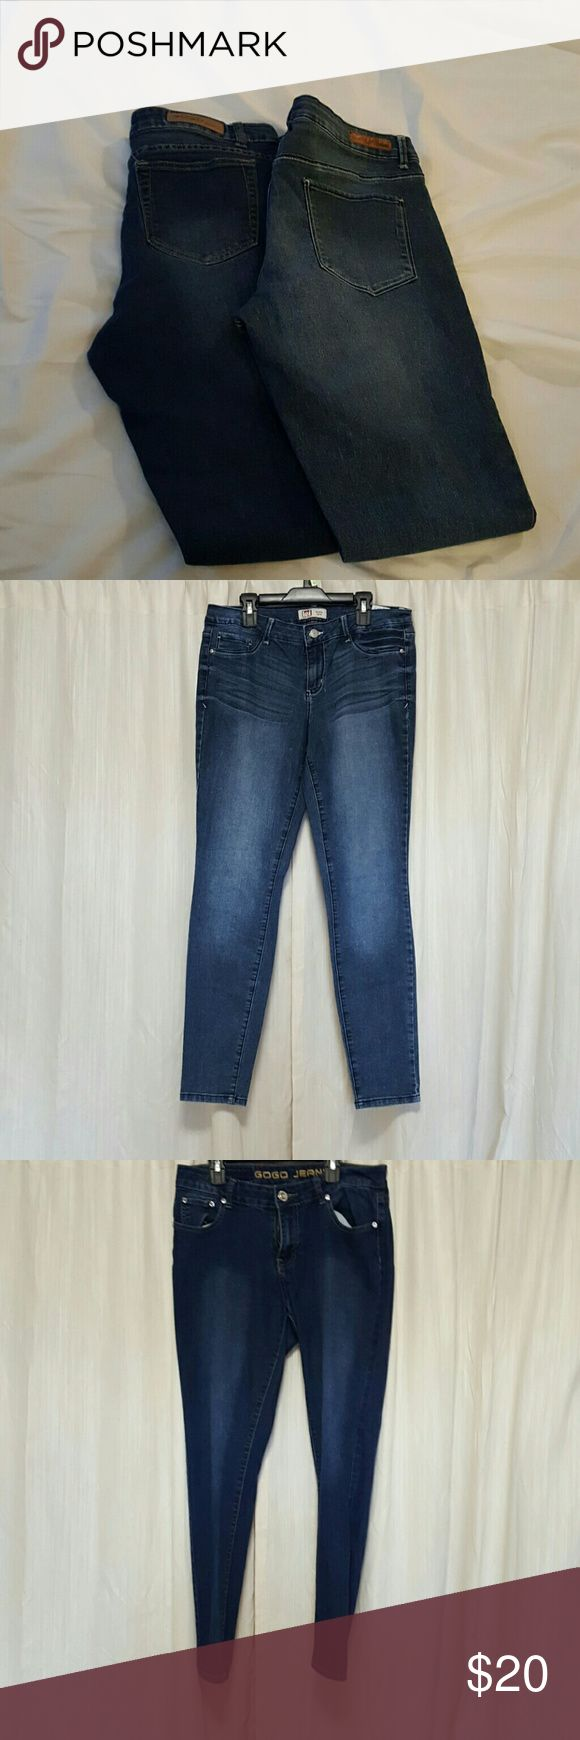 """Denim 2 pack 2 pairs of jeans brands include lei and gitton. Inseam 29-29.5"""" Jeans Skinny"""